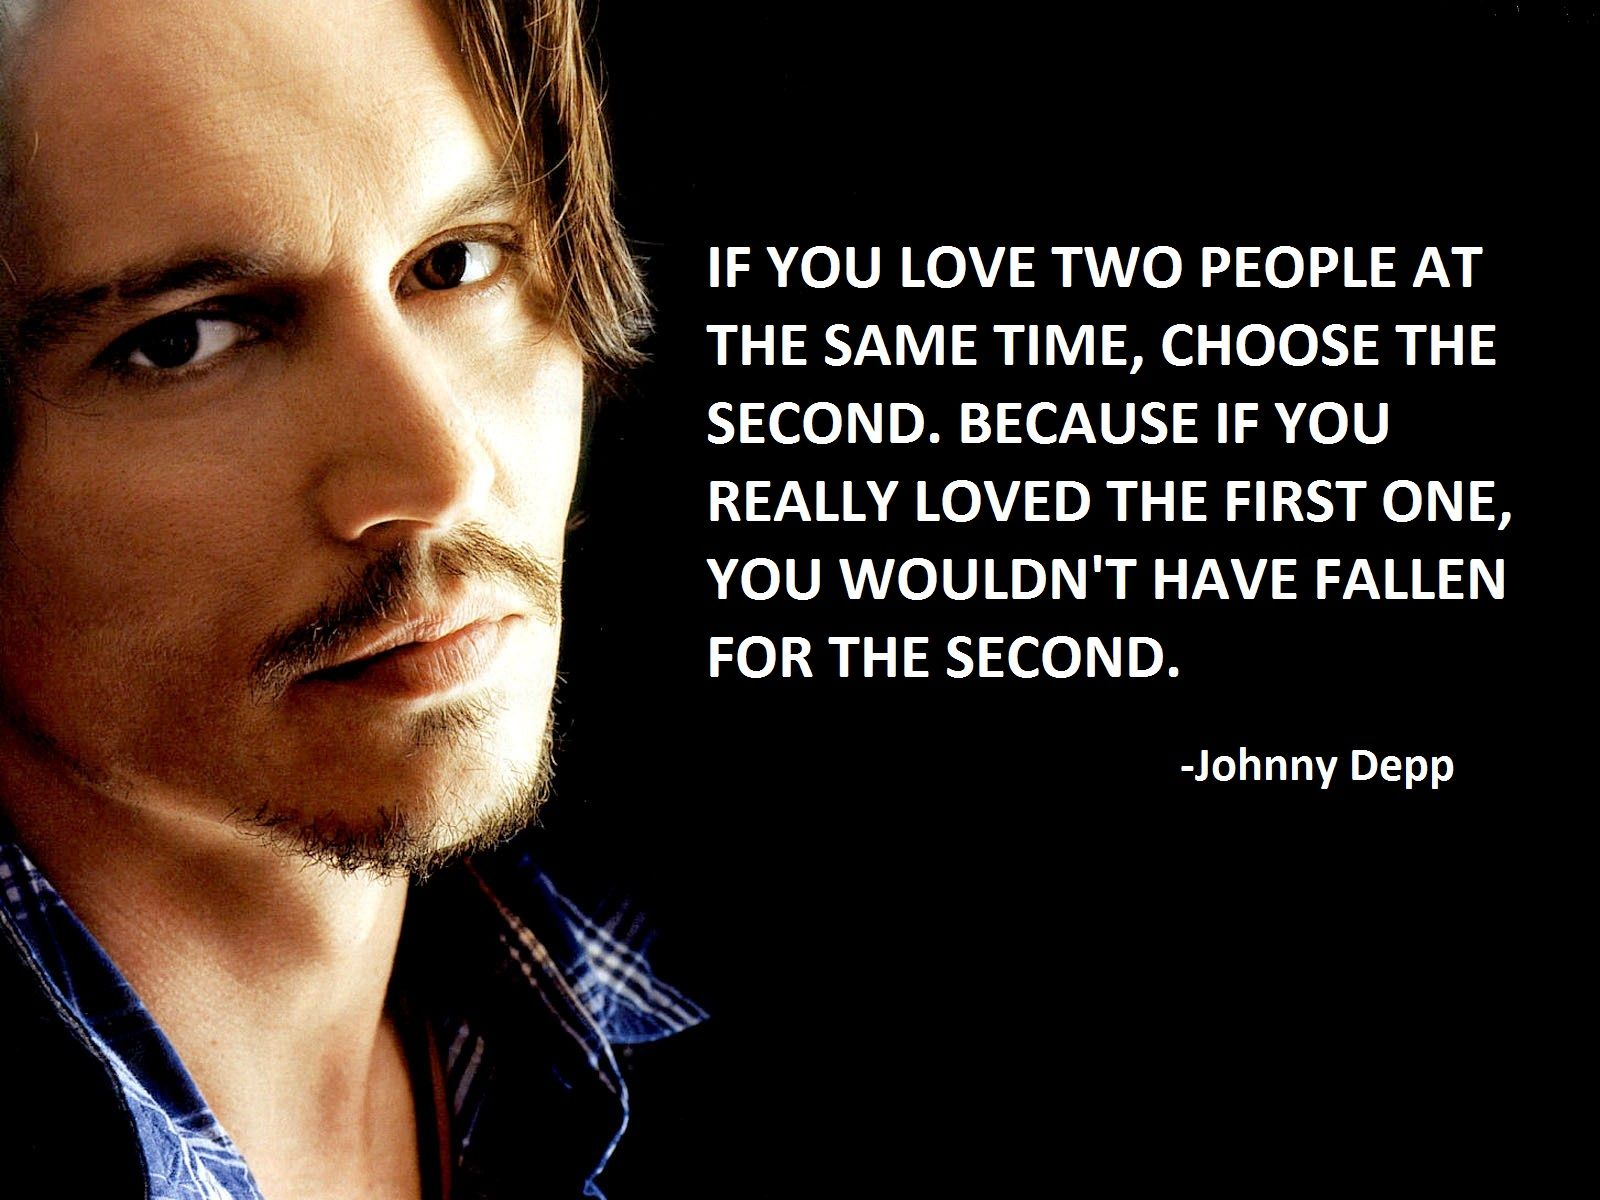 Johnny Depp Love Quotes Adorable Pirates Of The Caribbean Quotes  Johnny Depp Quotes From Pirates Of